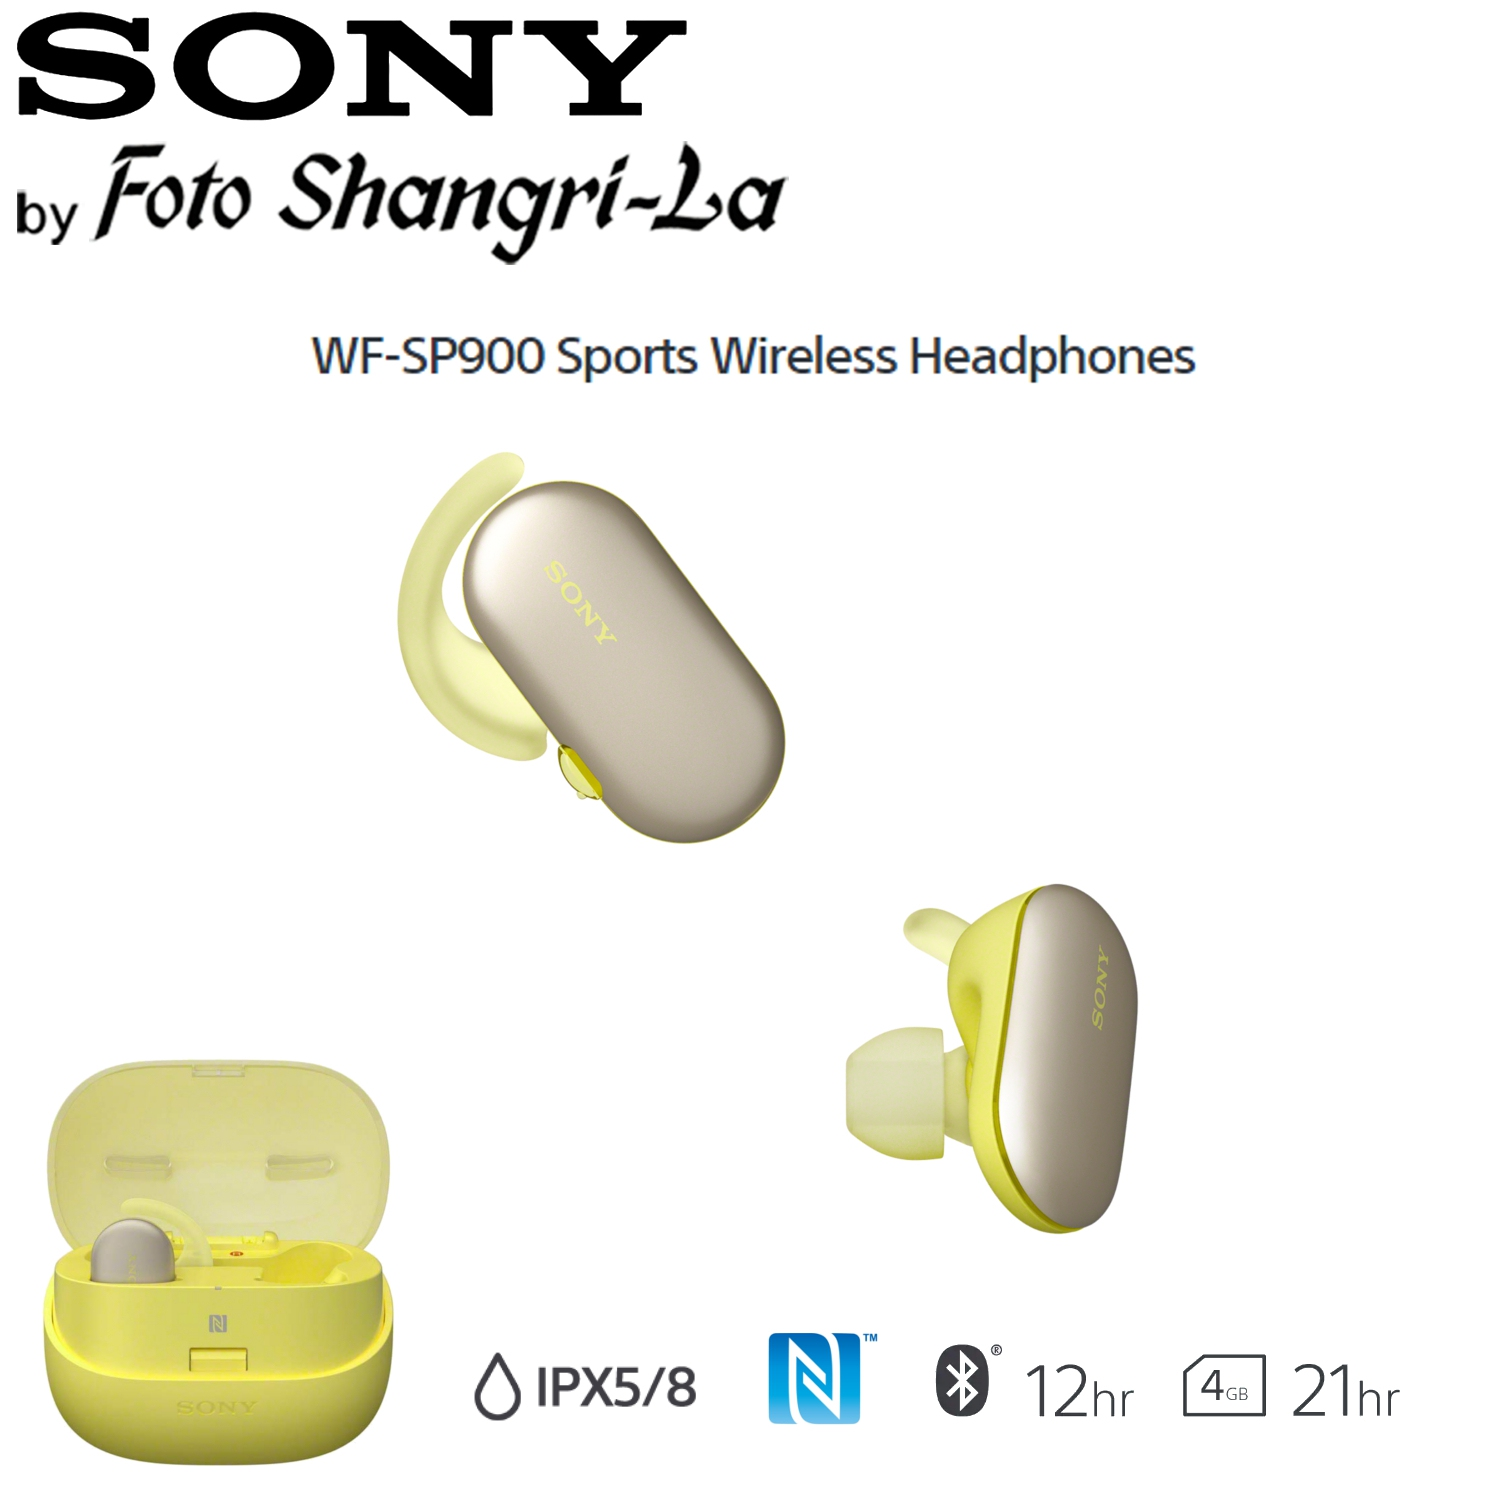 Sony WF-SP900 Sports Wireless Earbuds In-Ear Headphones Ambient Sound (Yellow)